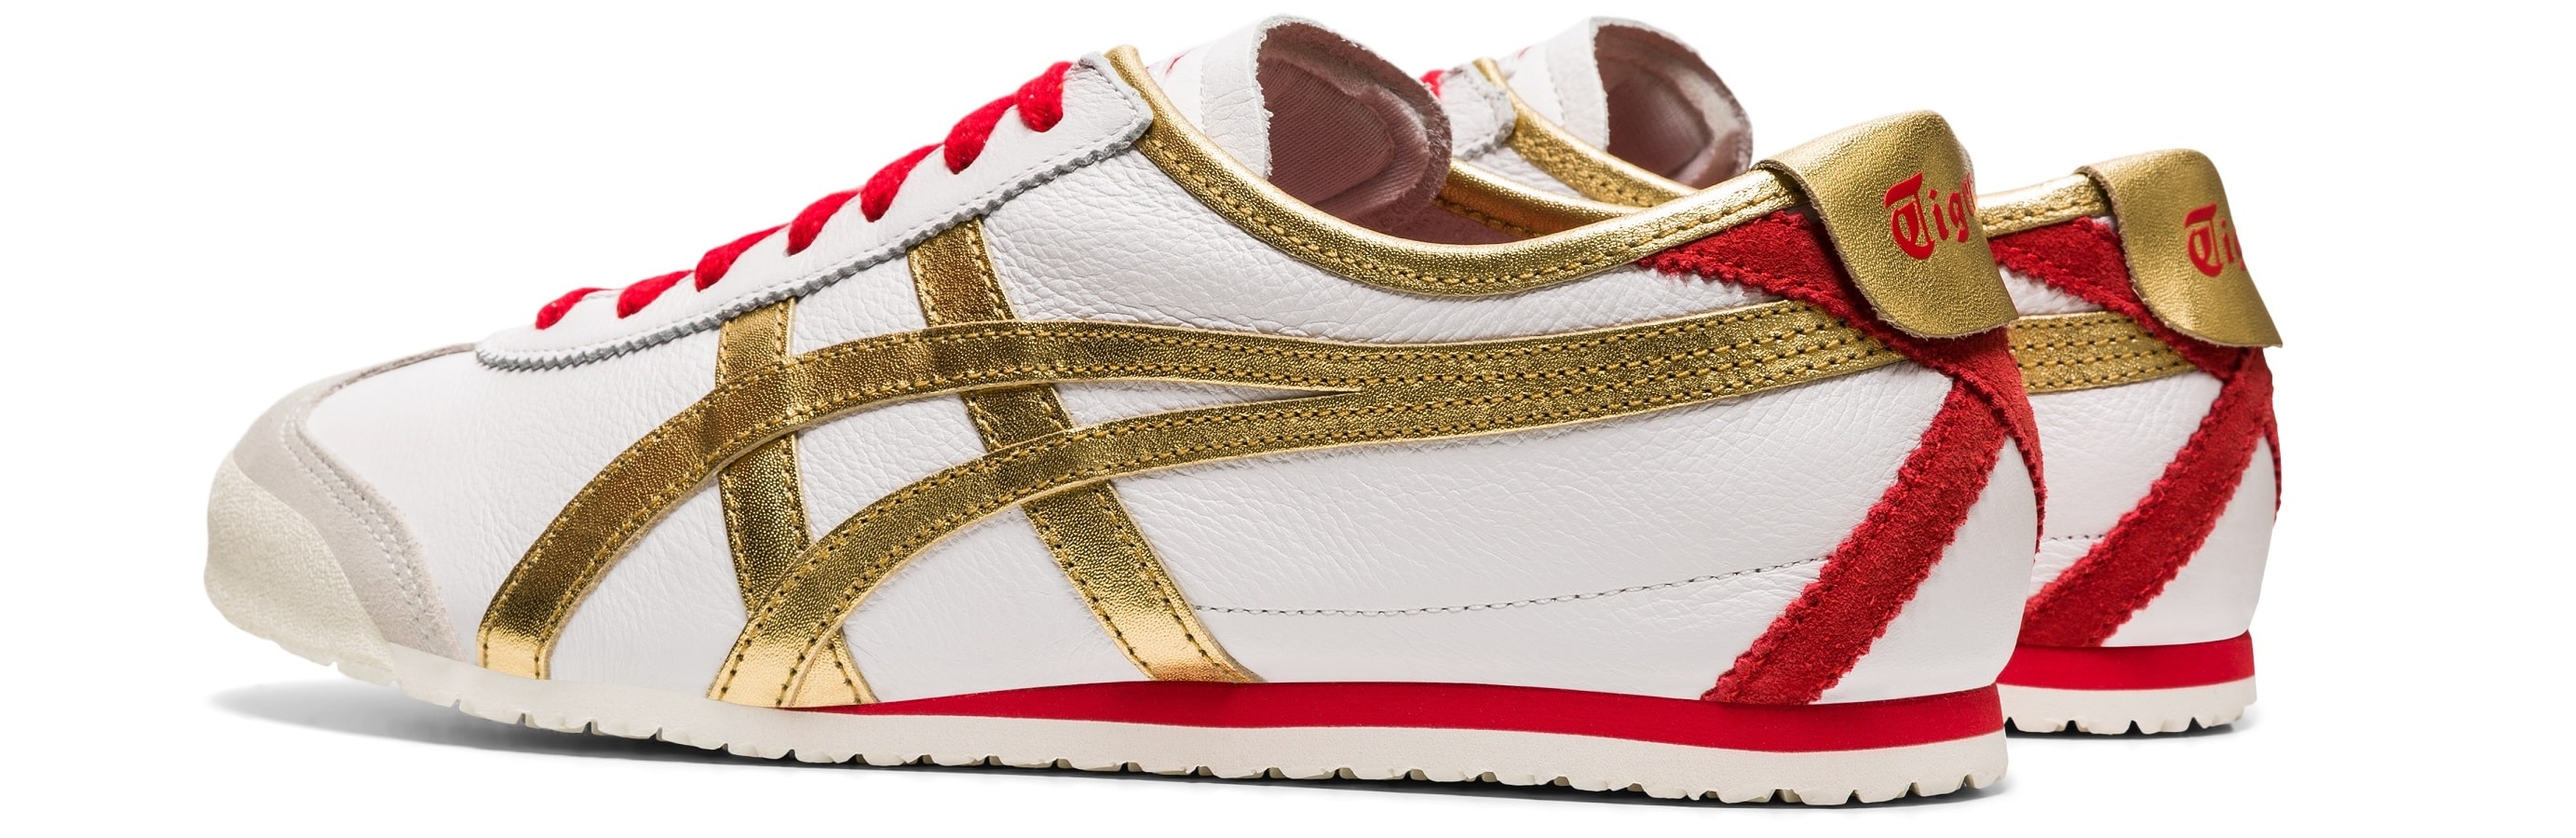 Onitsuka Tiger releases the Mexico 66 Metallic Pack